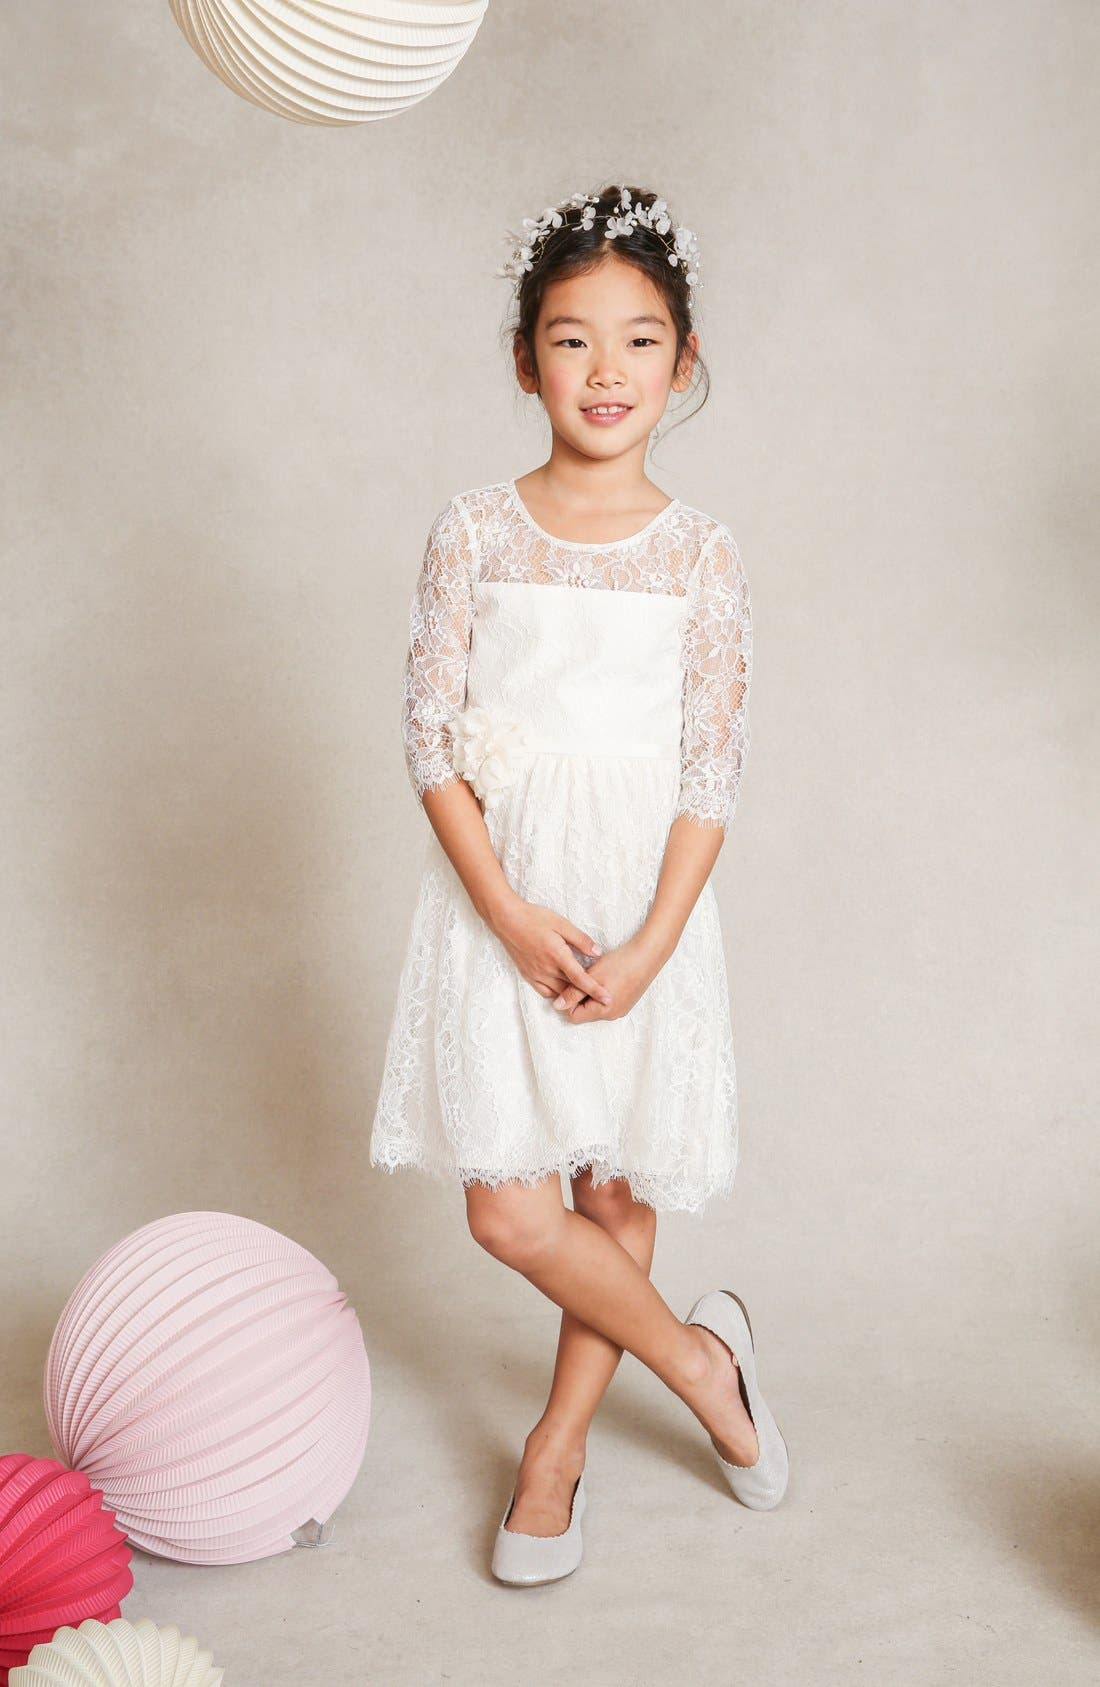 Alternate Image 1 Selected - Jenny Yoo 'Annie' Floral Appliqué Lace Dress (Toddler, Little Girls & Big Girls)